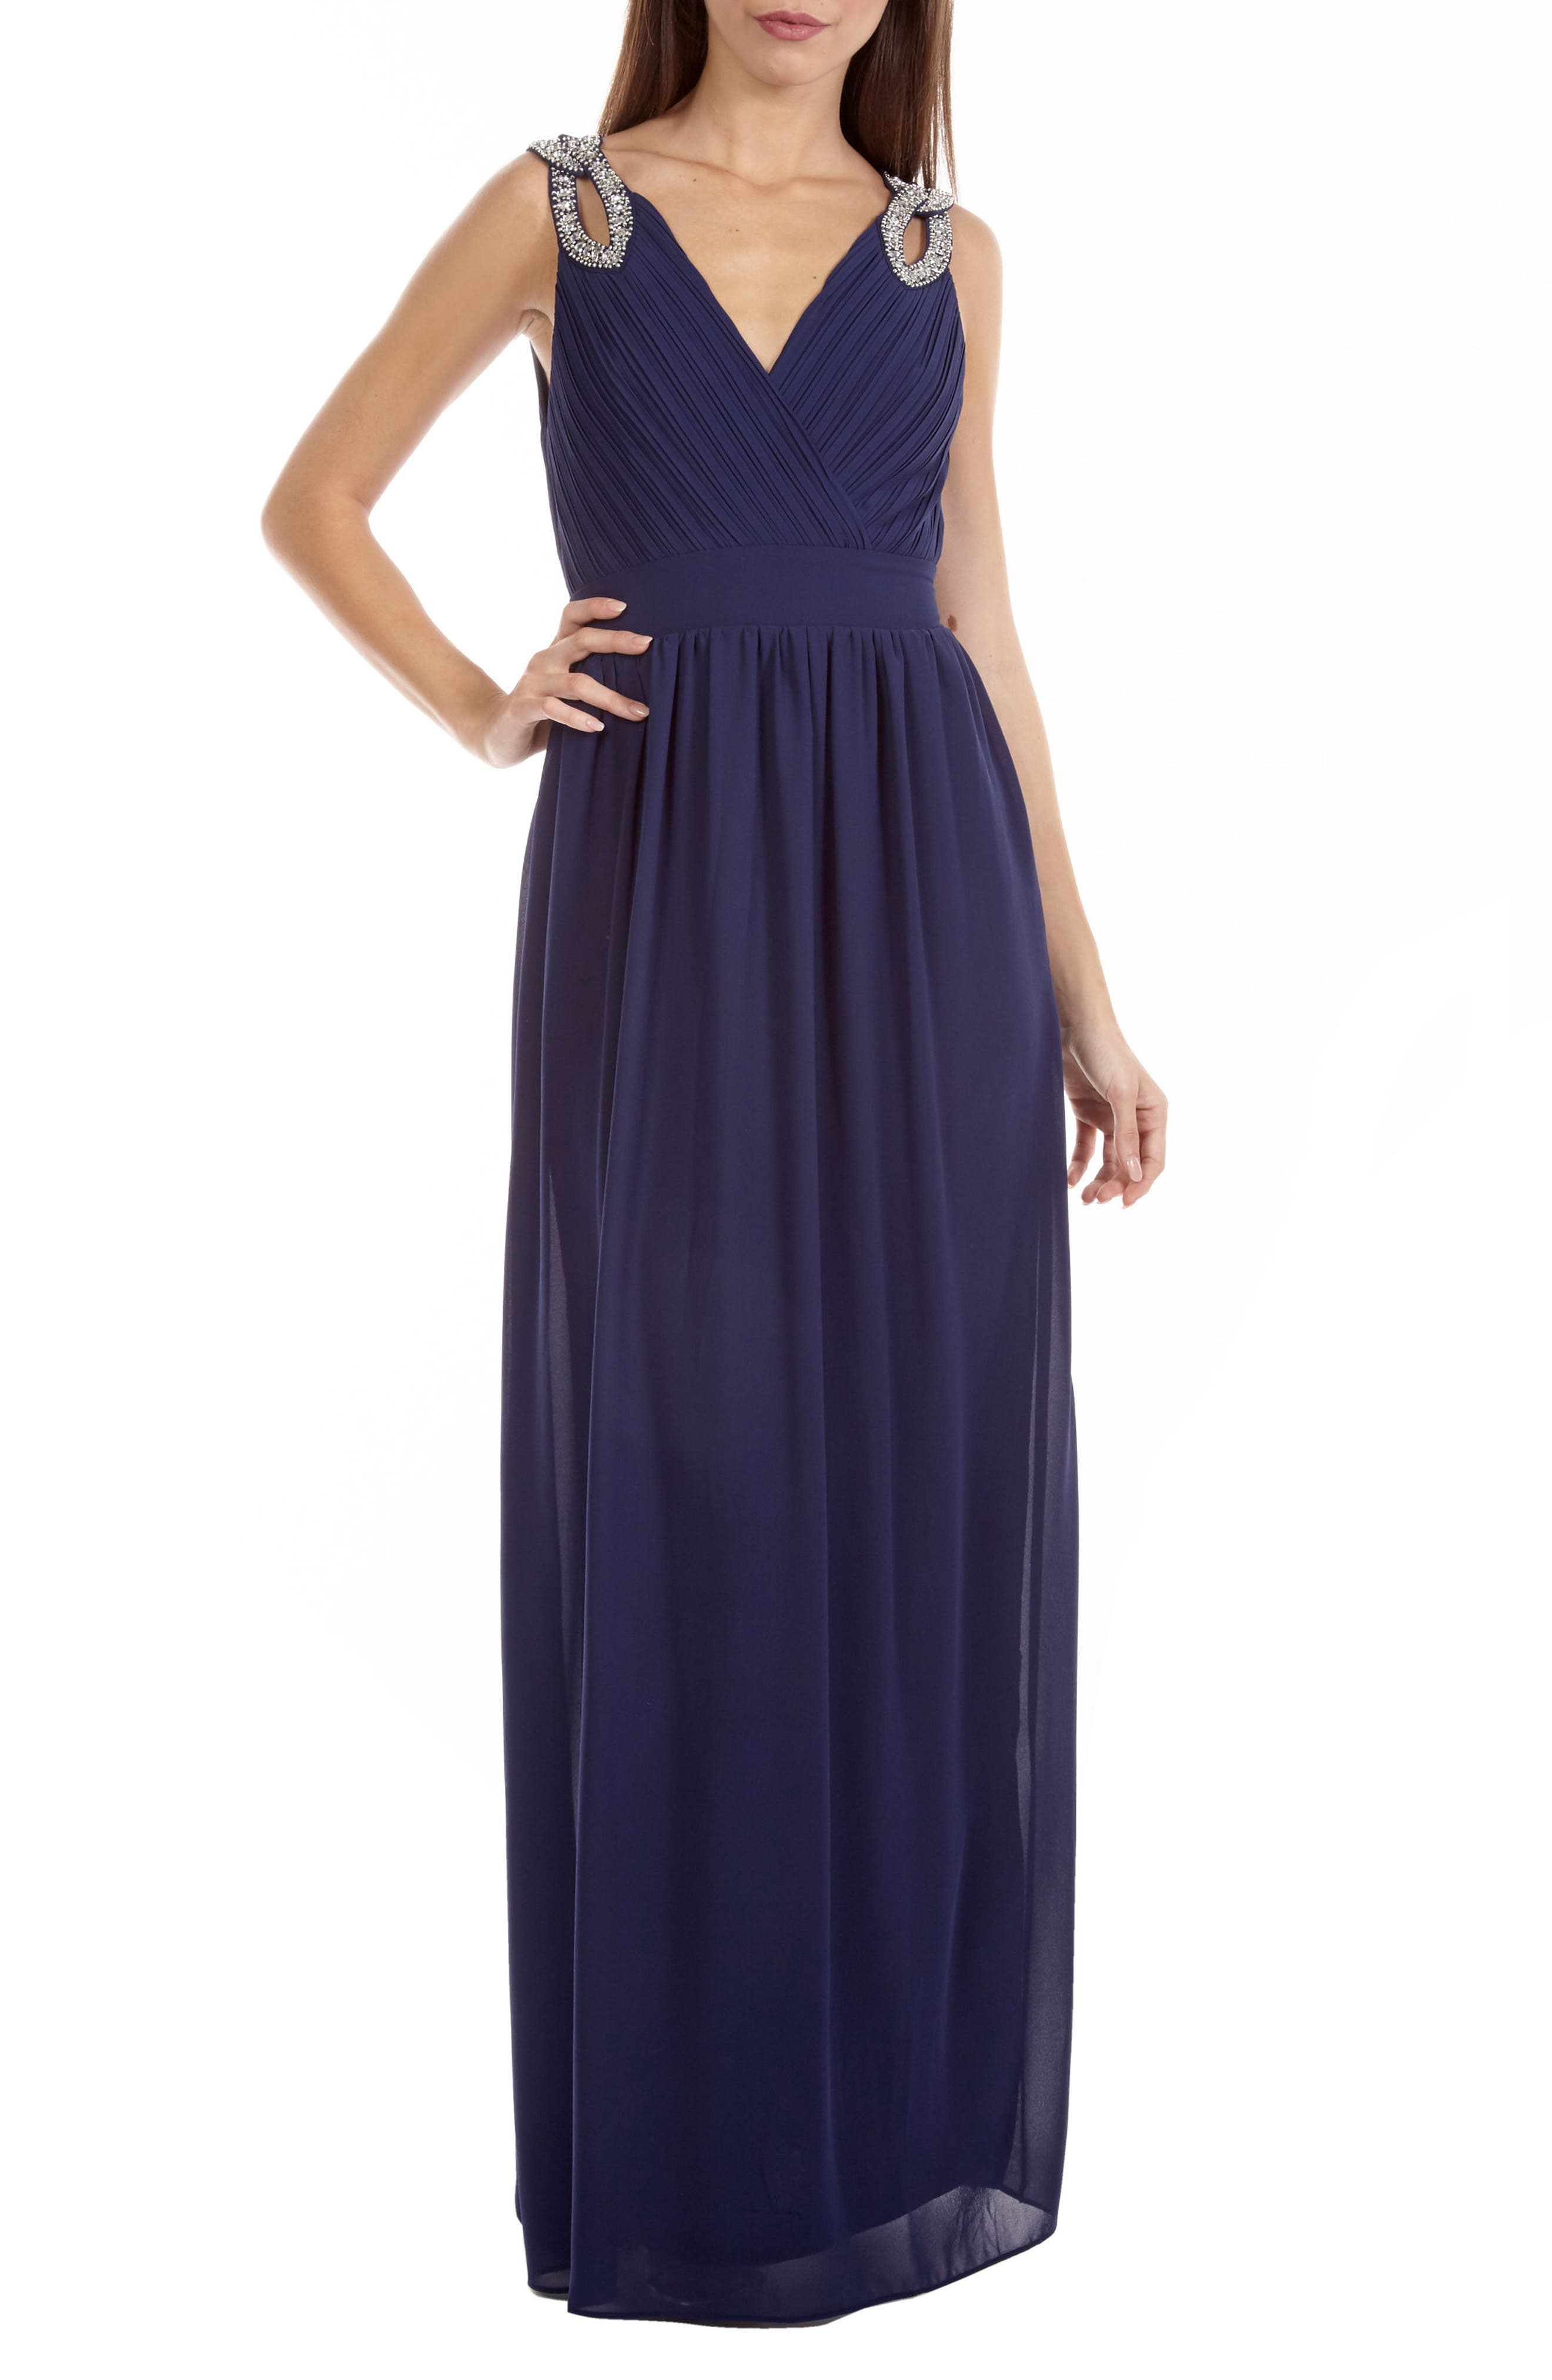 Debbie Embellished Pleated Chiffon Gown,                         Main,                         color, Navy